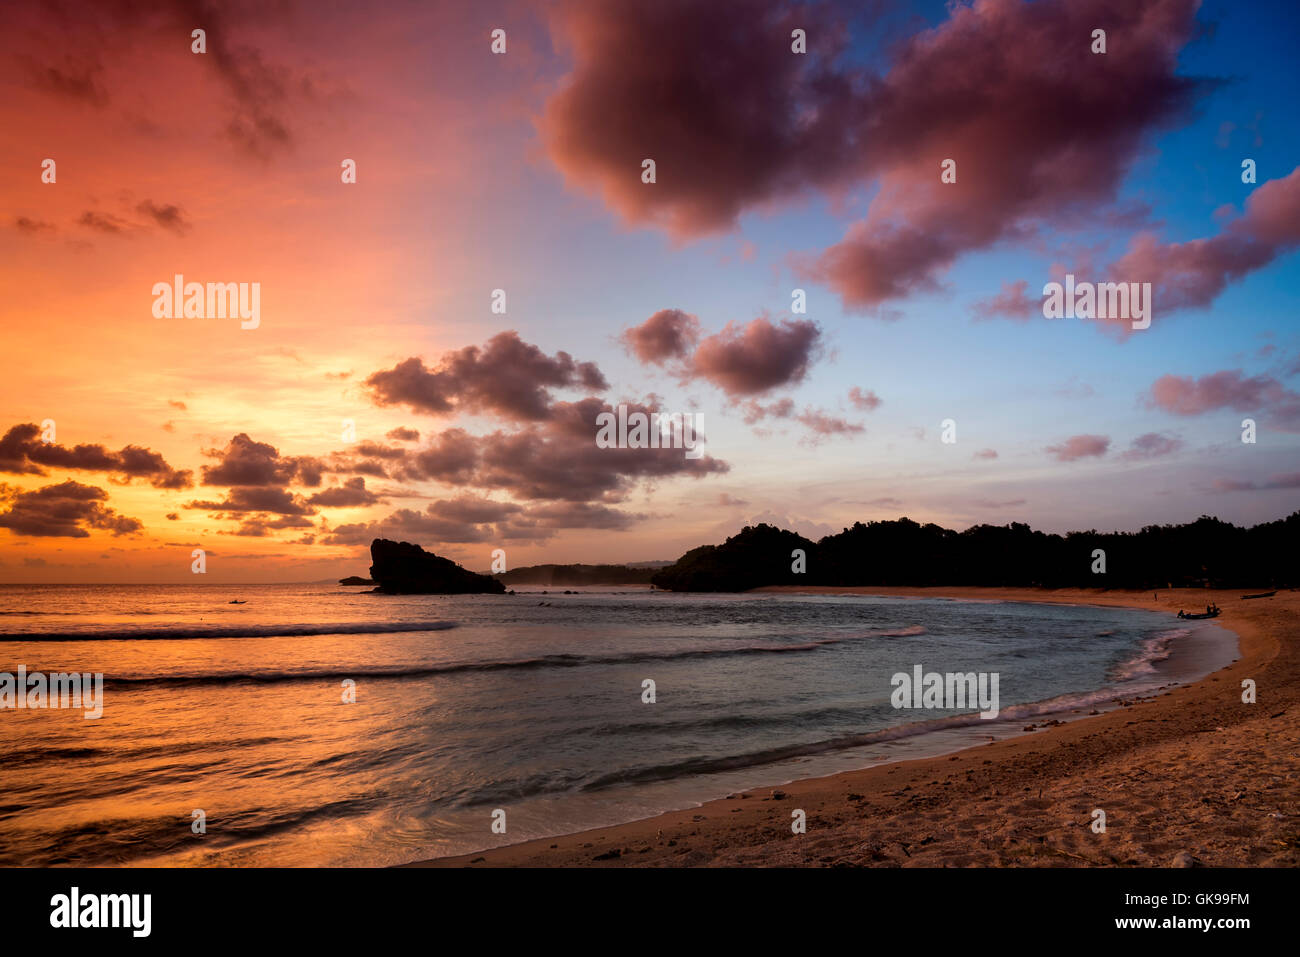 Sunset at the lagoon of Watu Karung, Java, Indonesia - Stock Image